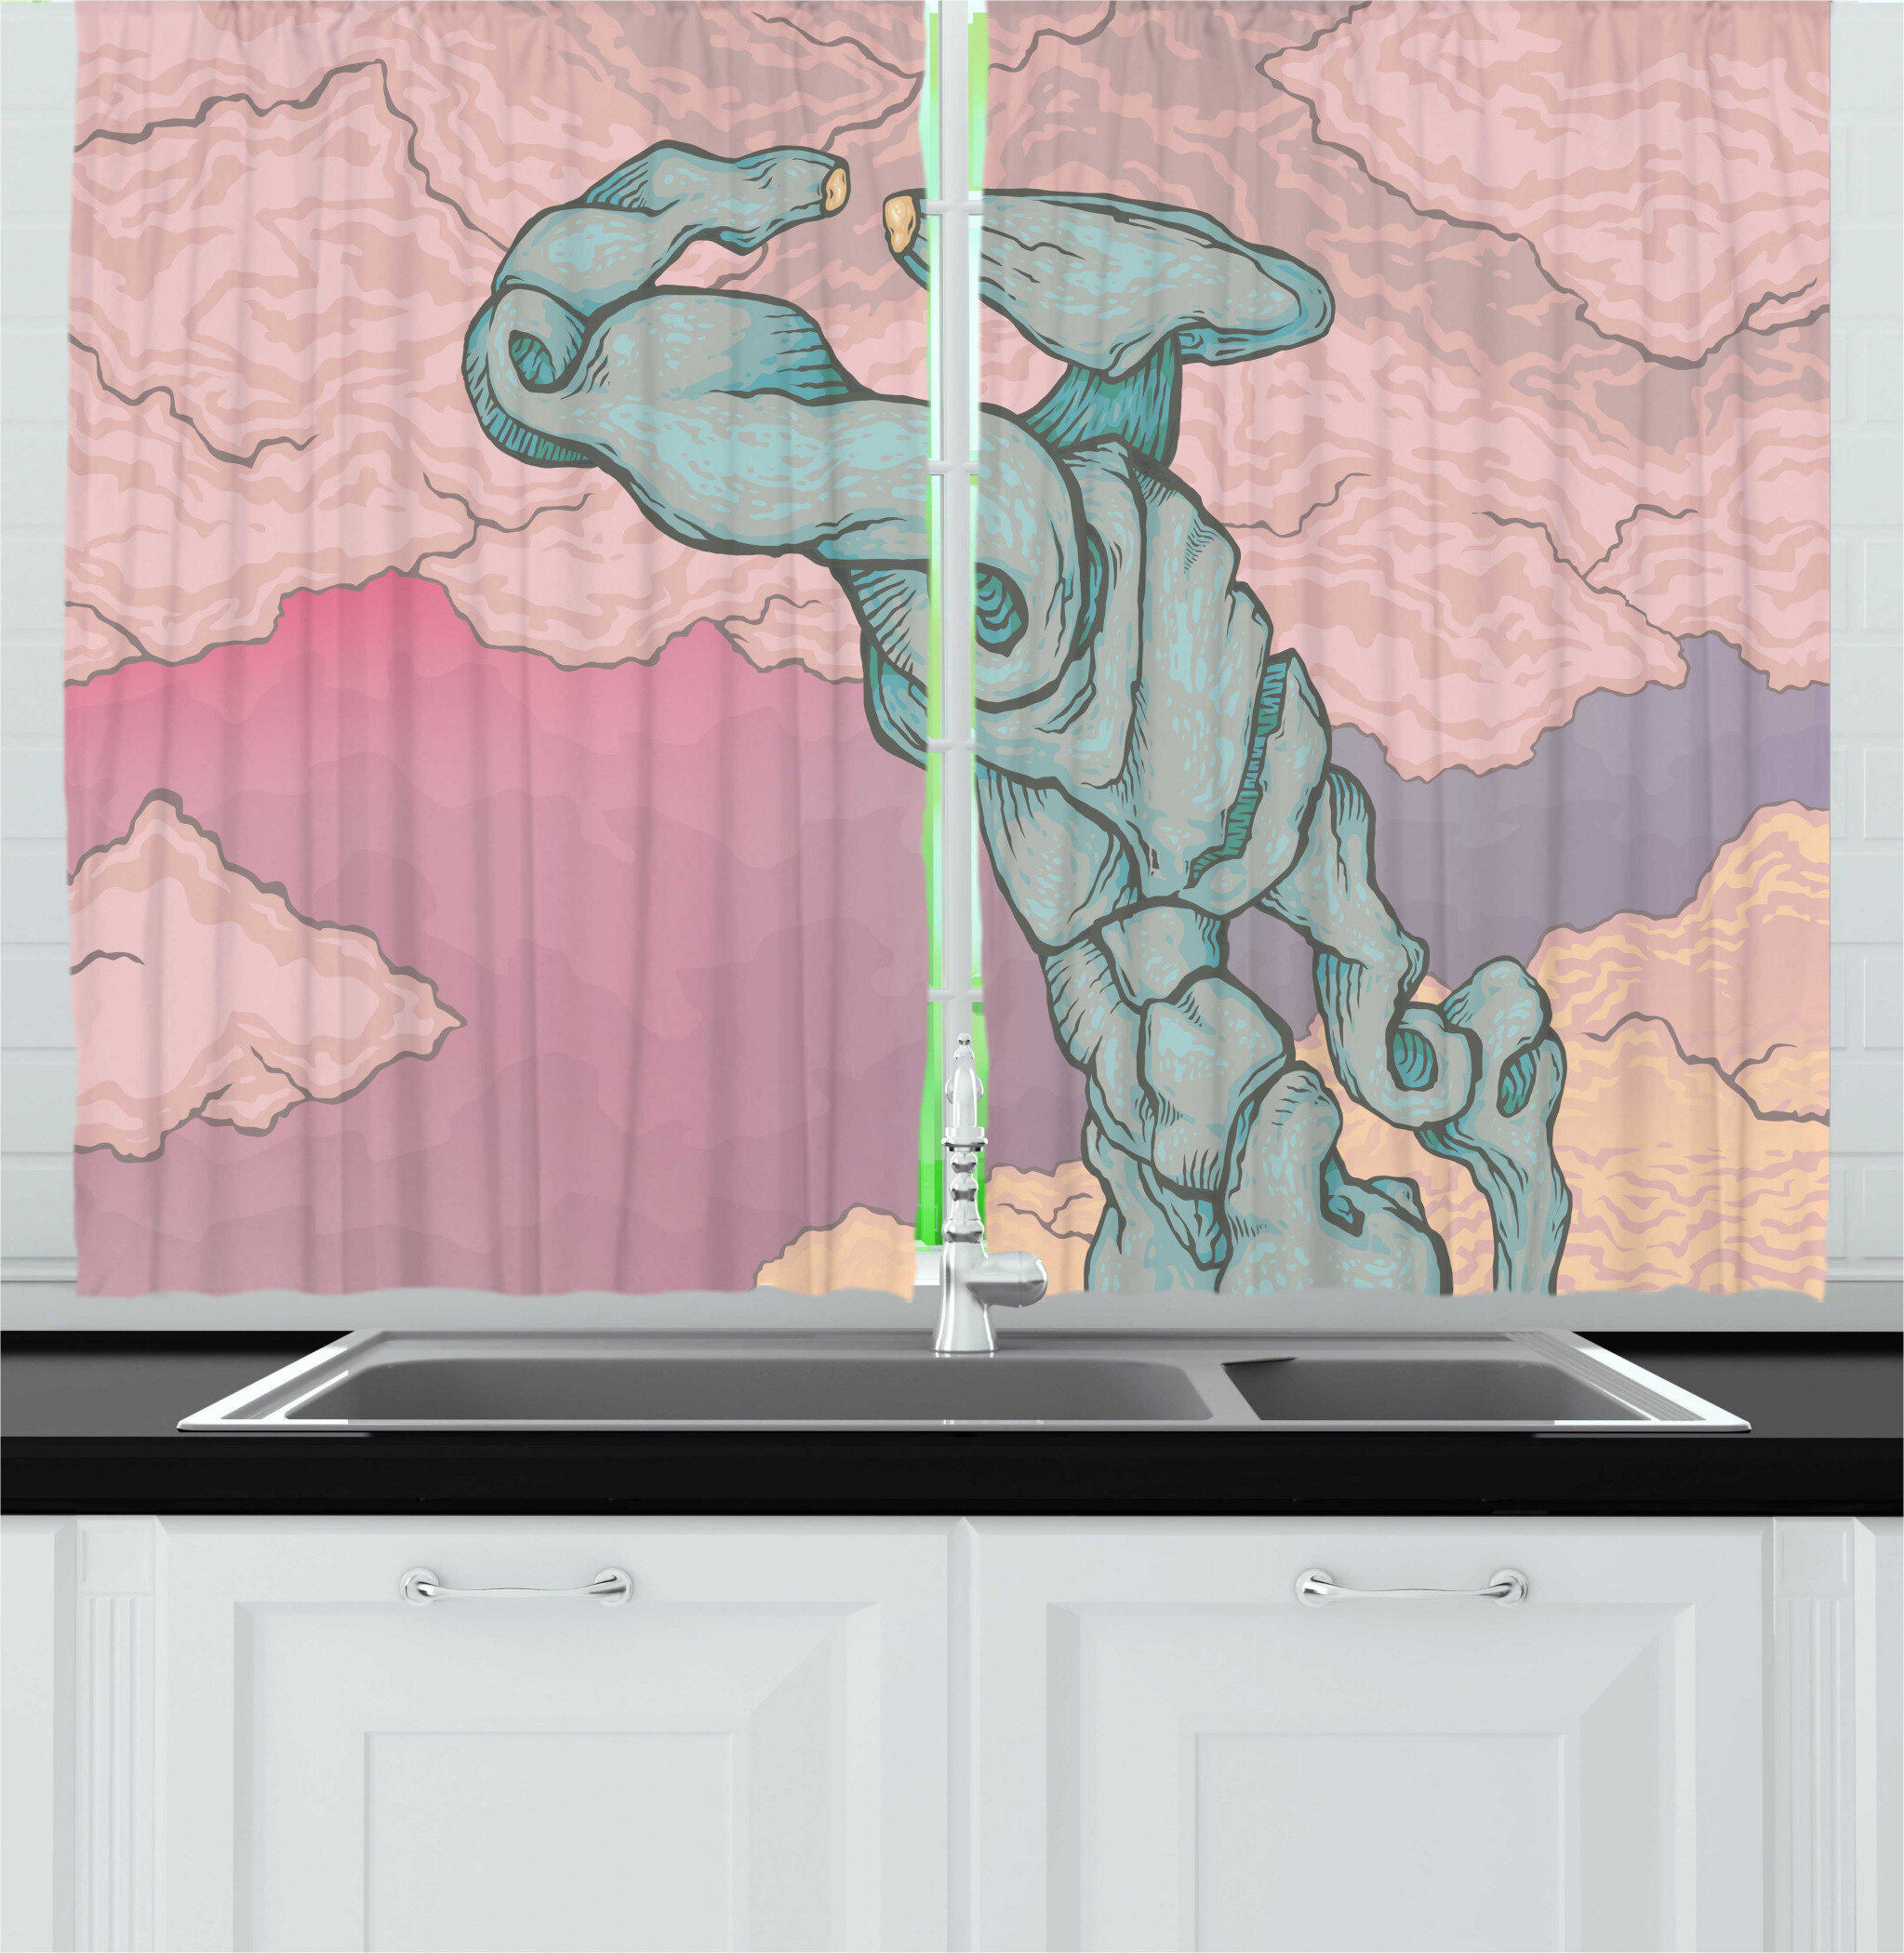 East Urban Home 2 Piece Blue And Pink Abstract Futuristic Artwork With Sci Fi Robot Drawing On Pastel Clouds Kitchen Curtain Set Wayfair